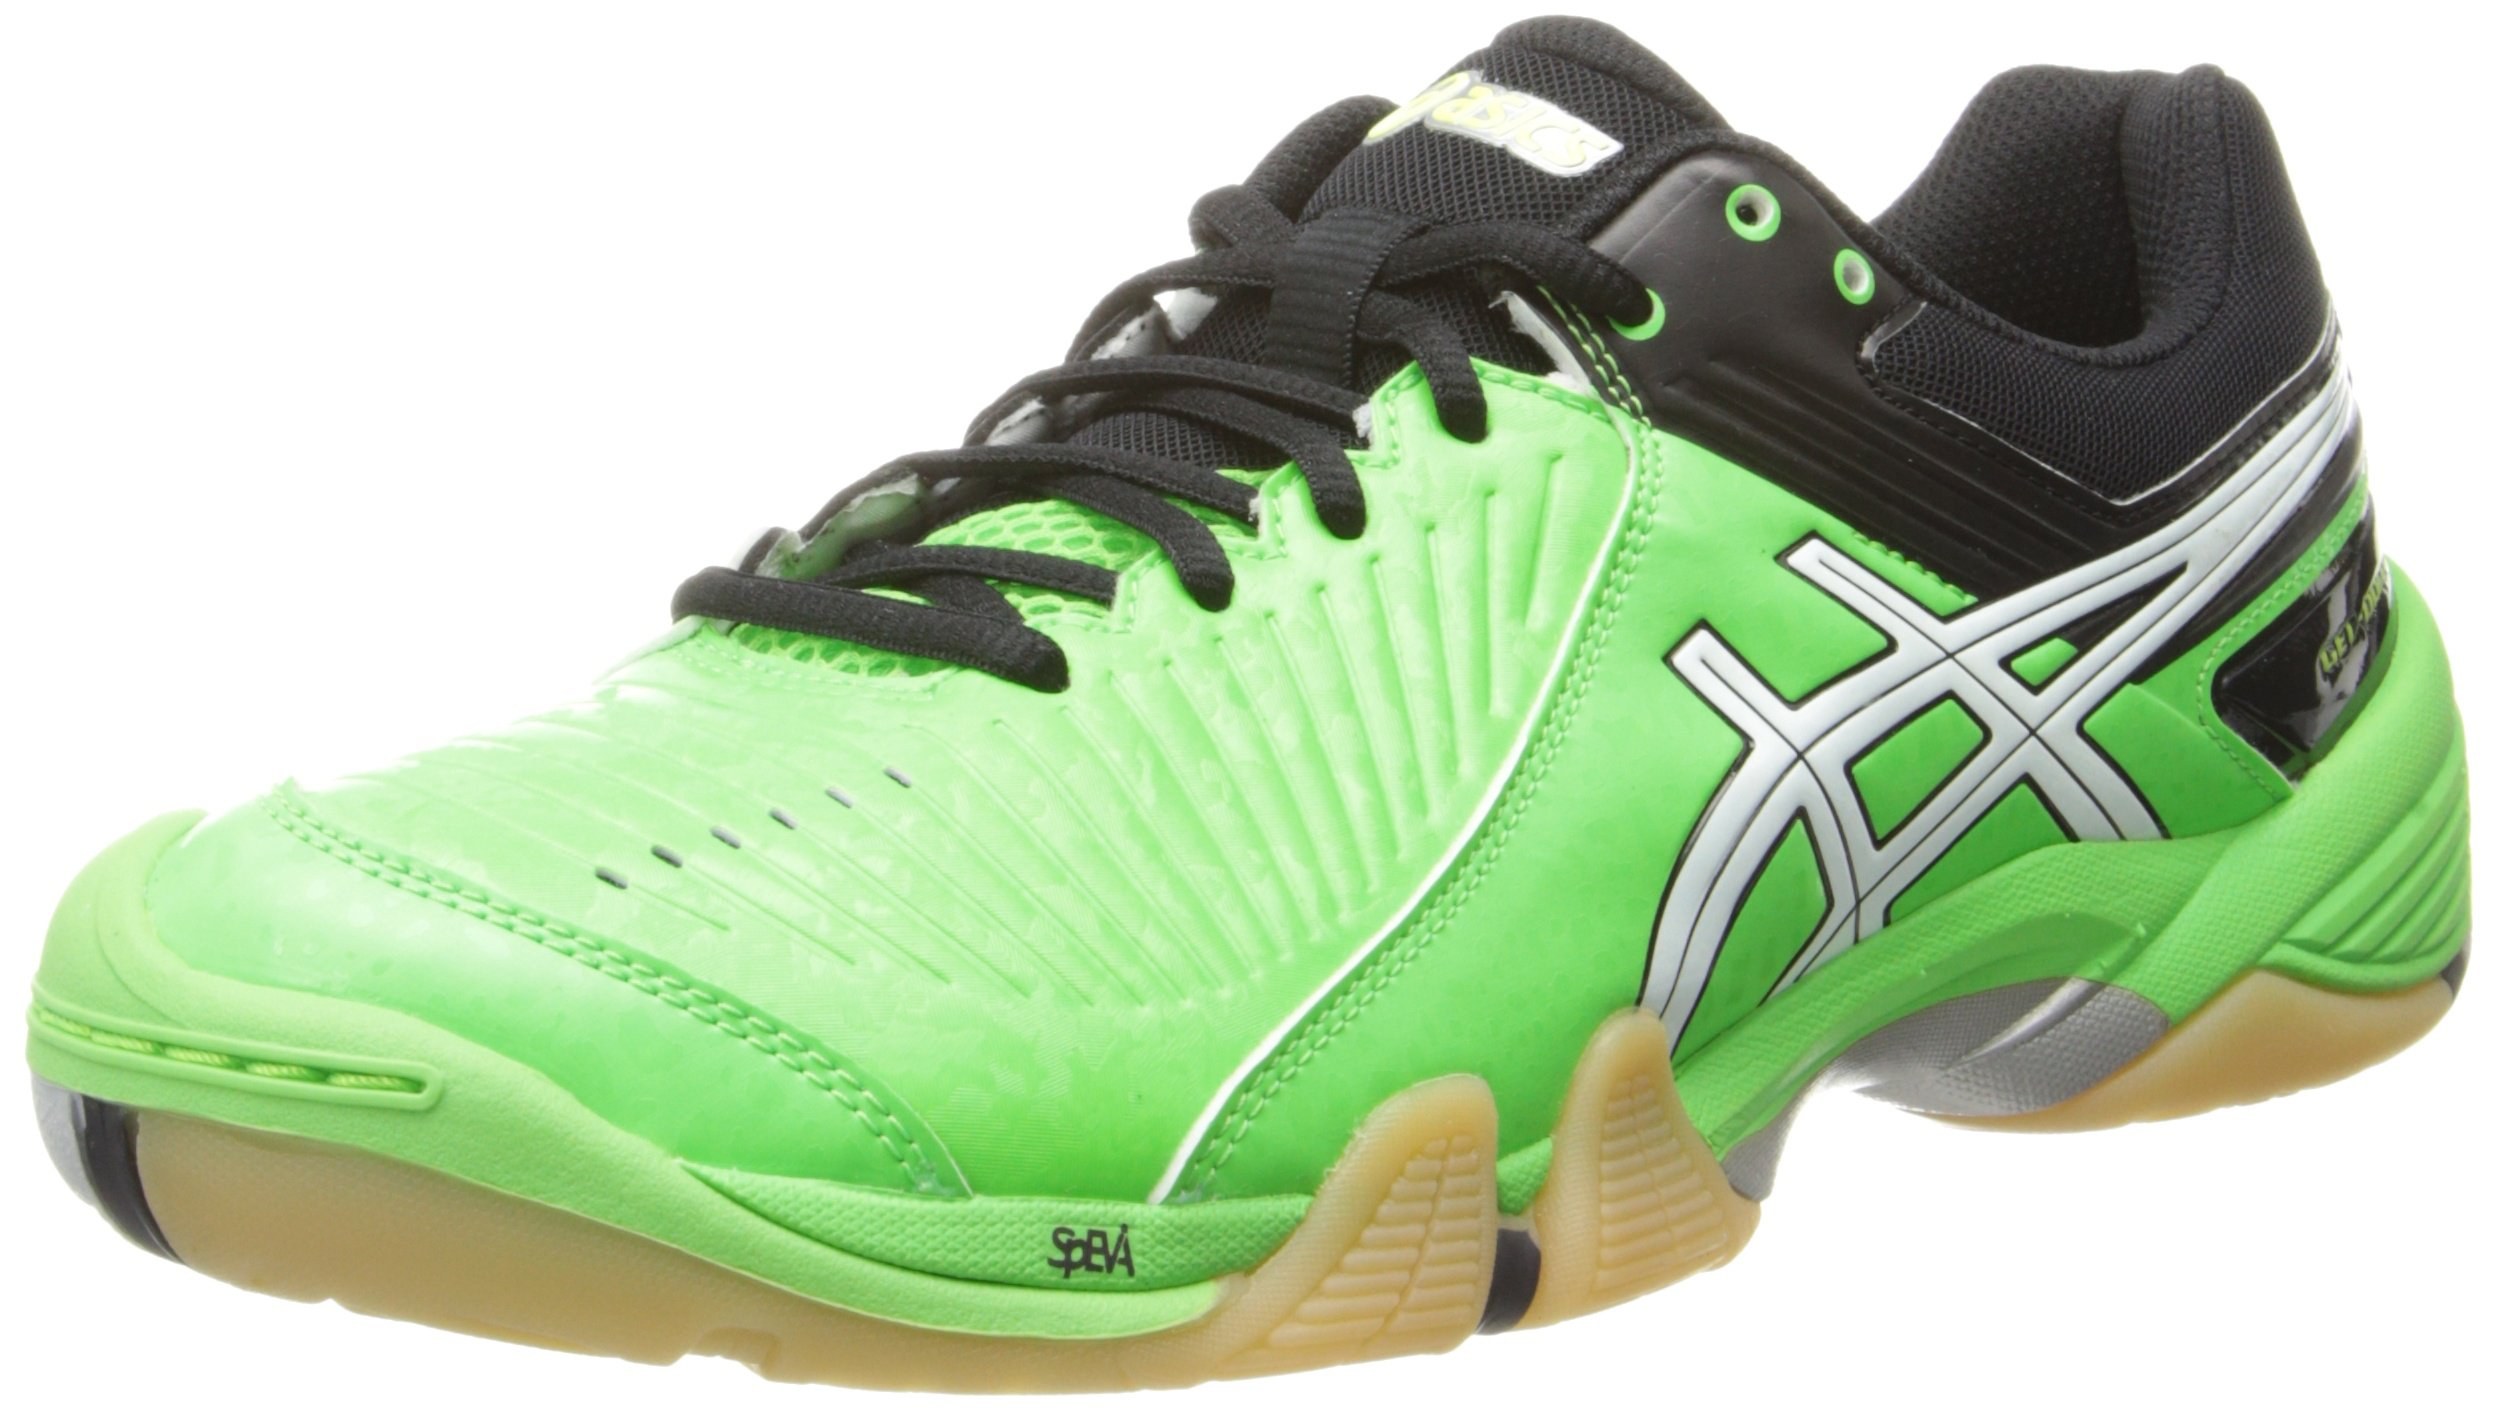 ASICS Men's Gel-Domain 3 Volleyball Shoe,Neon Green/White/Black,11.5 M US